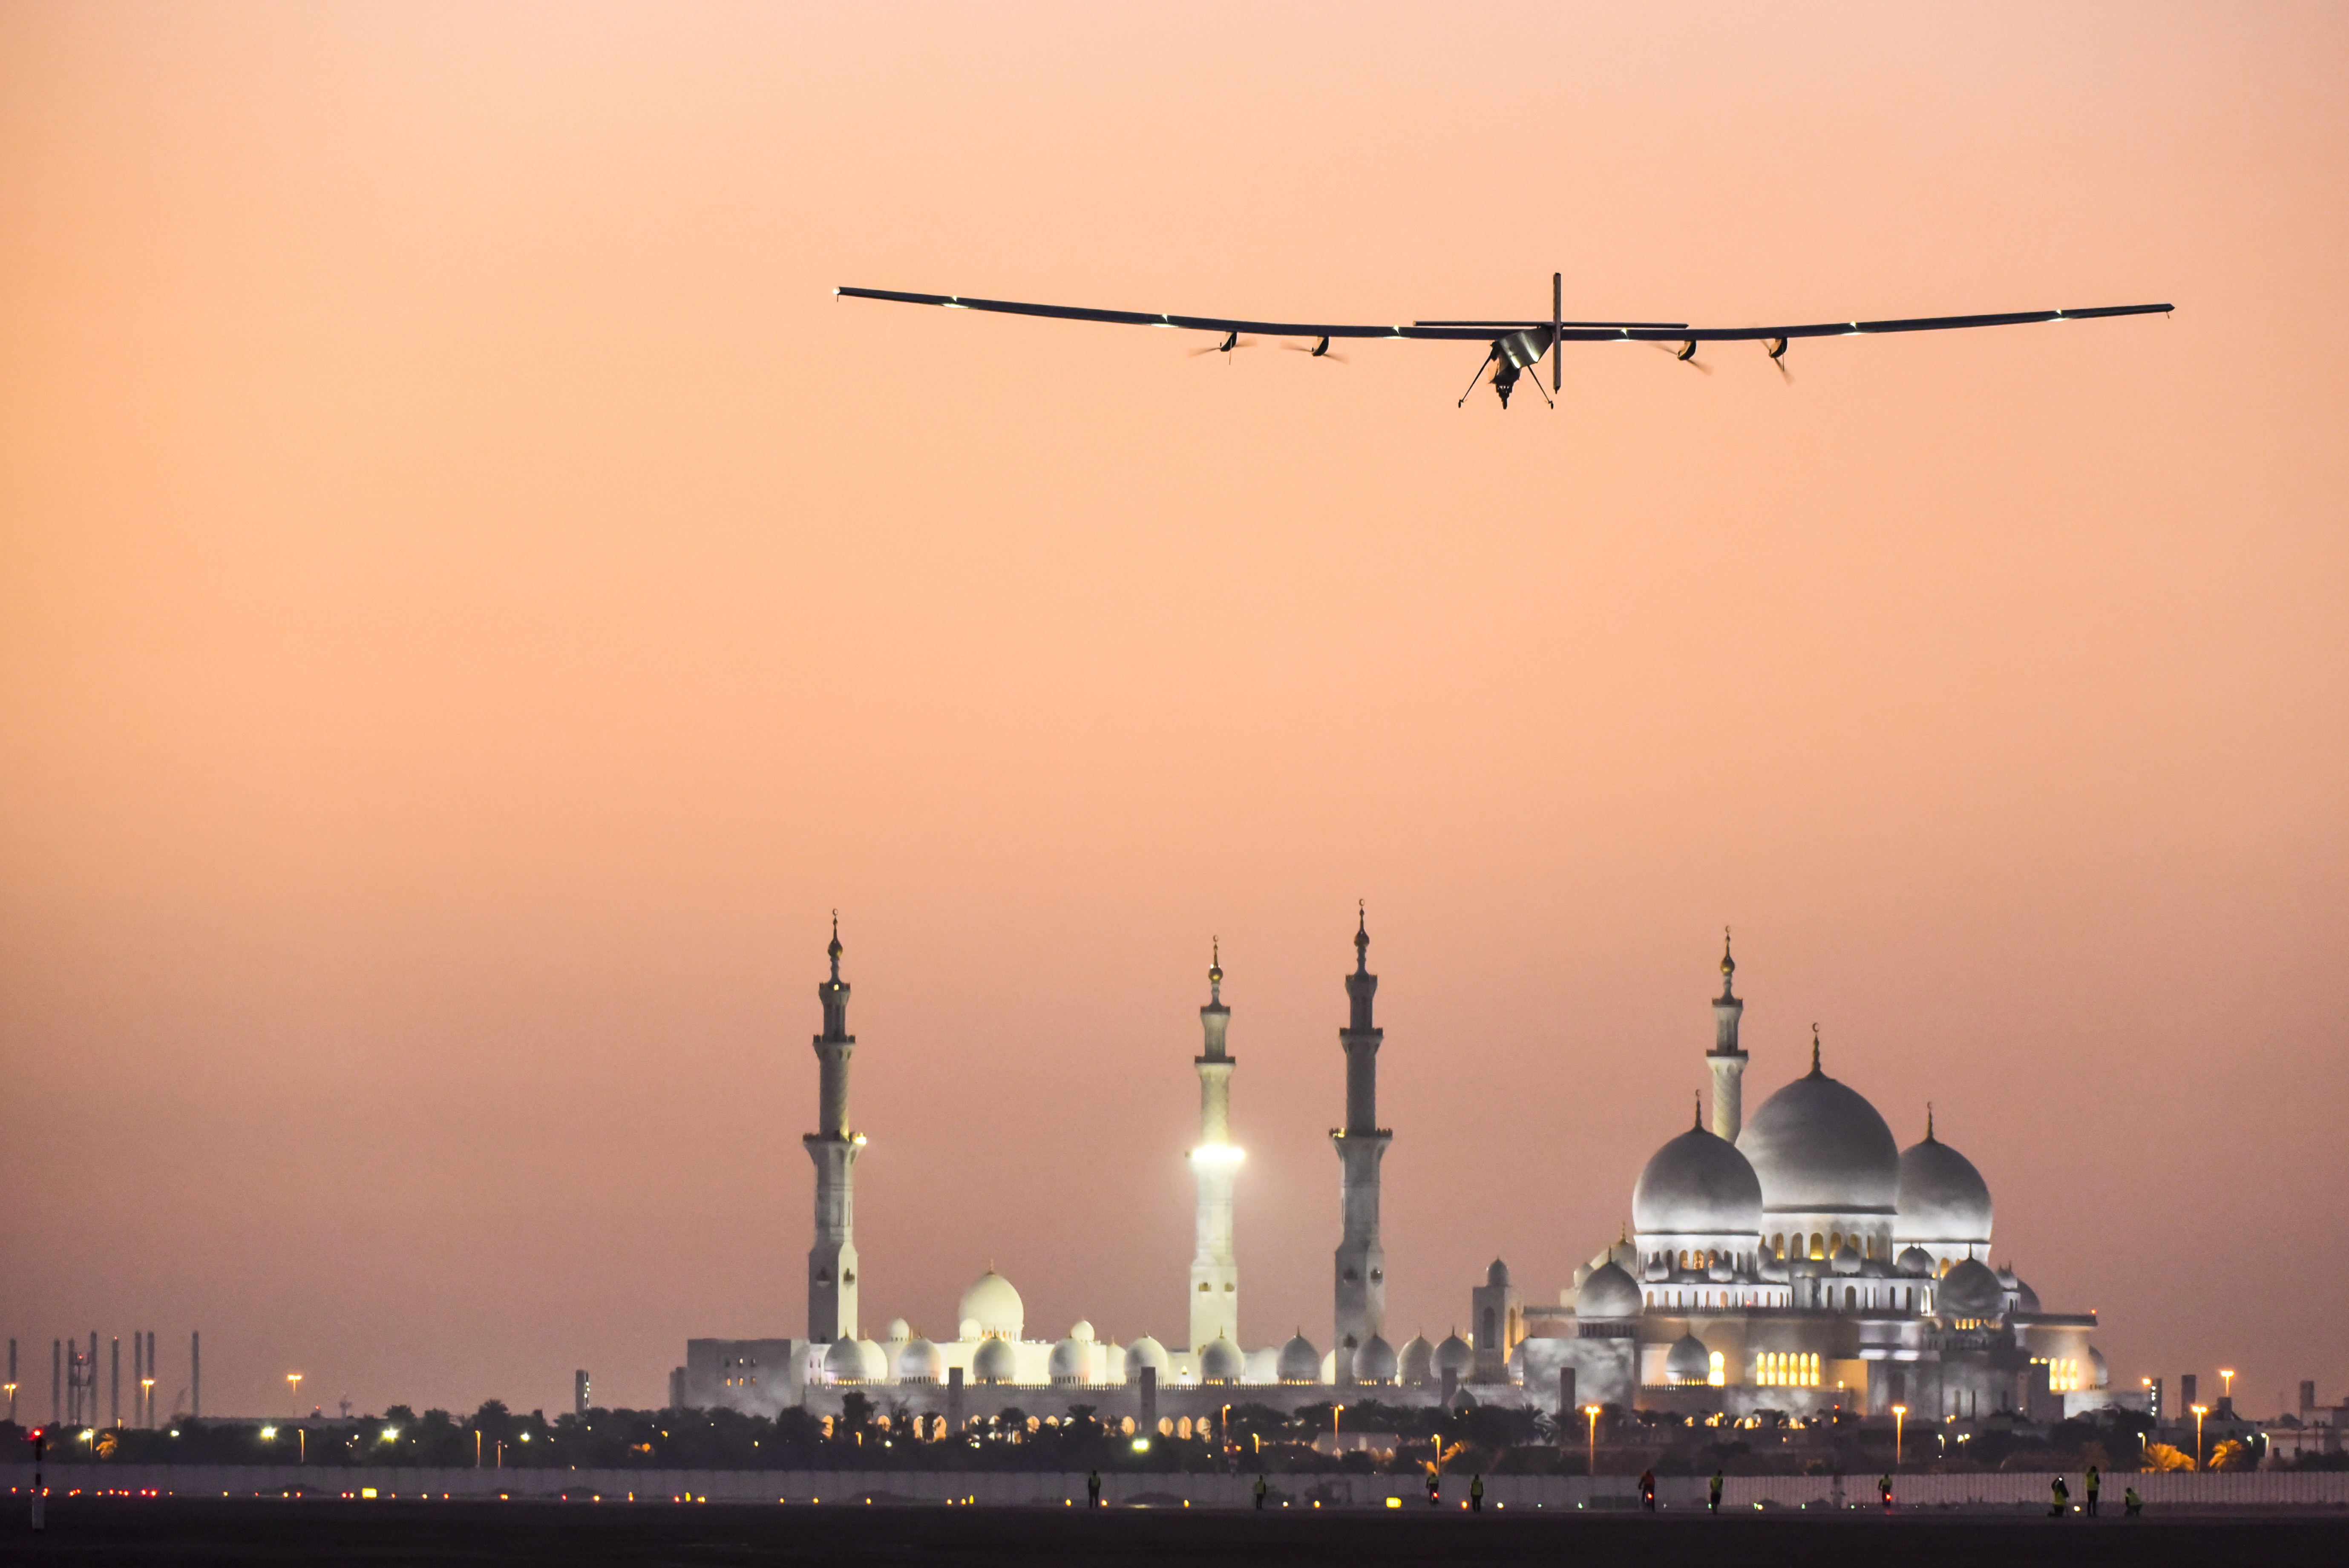 Solar Impulse 2 over Abu Dhabi